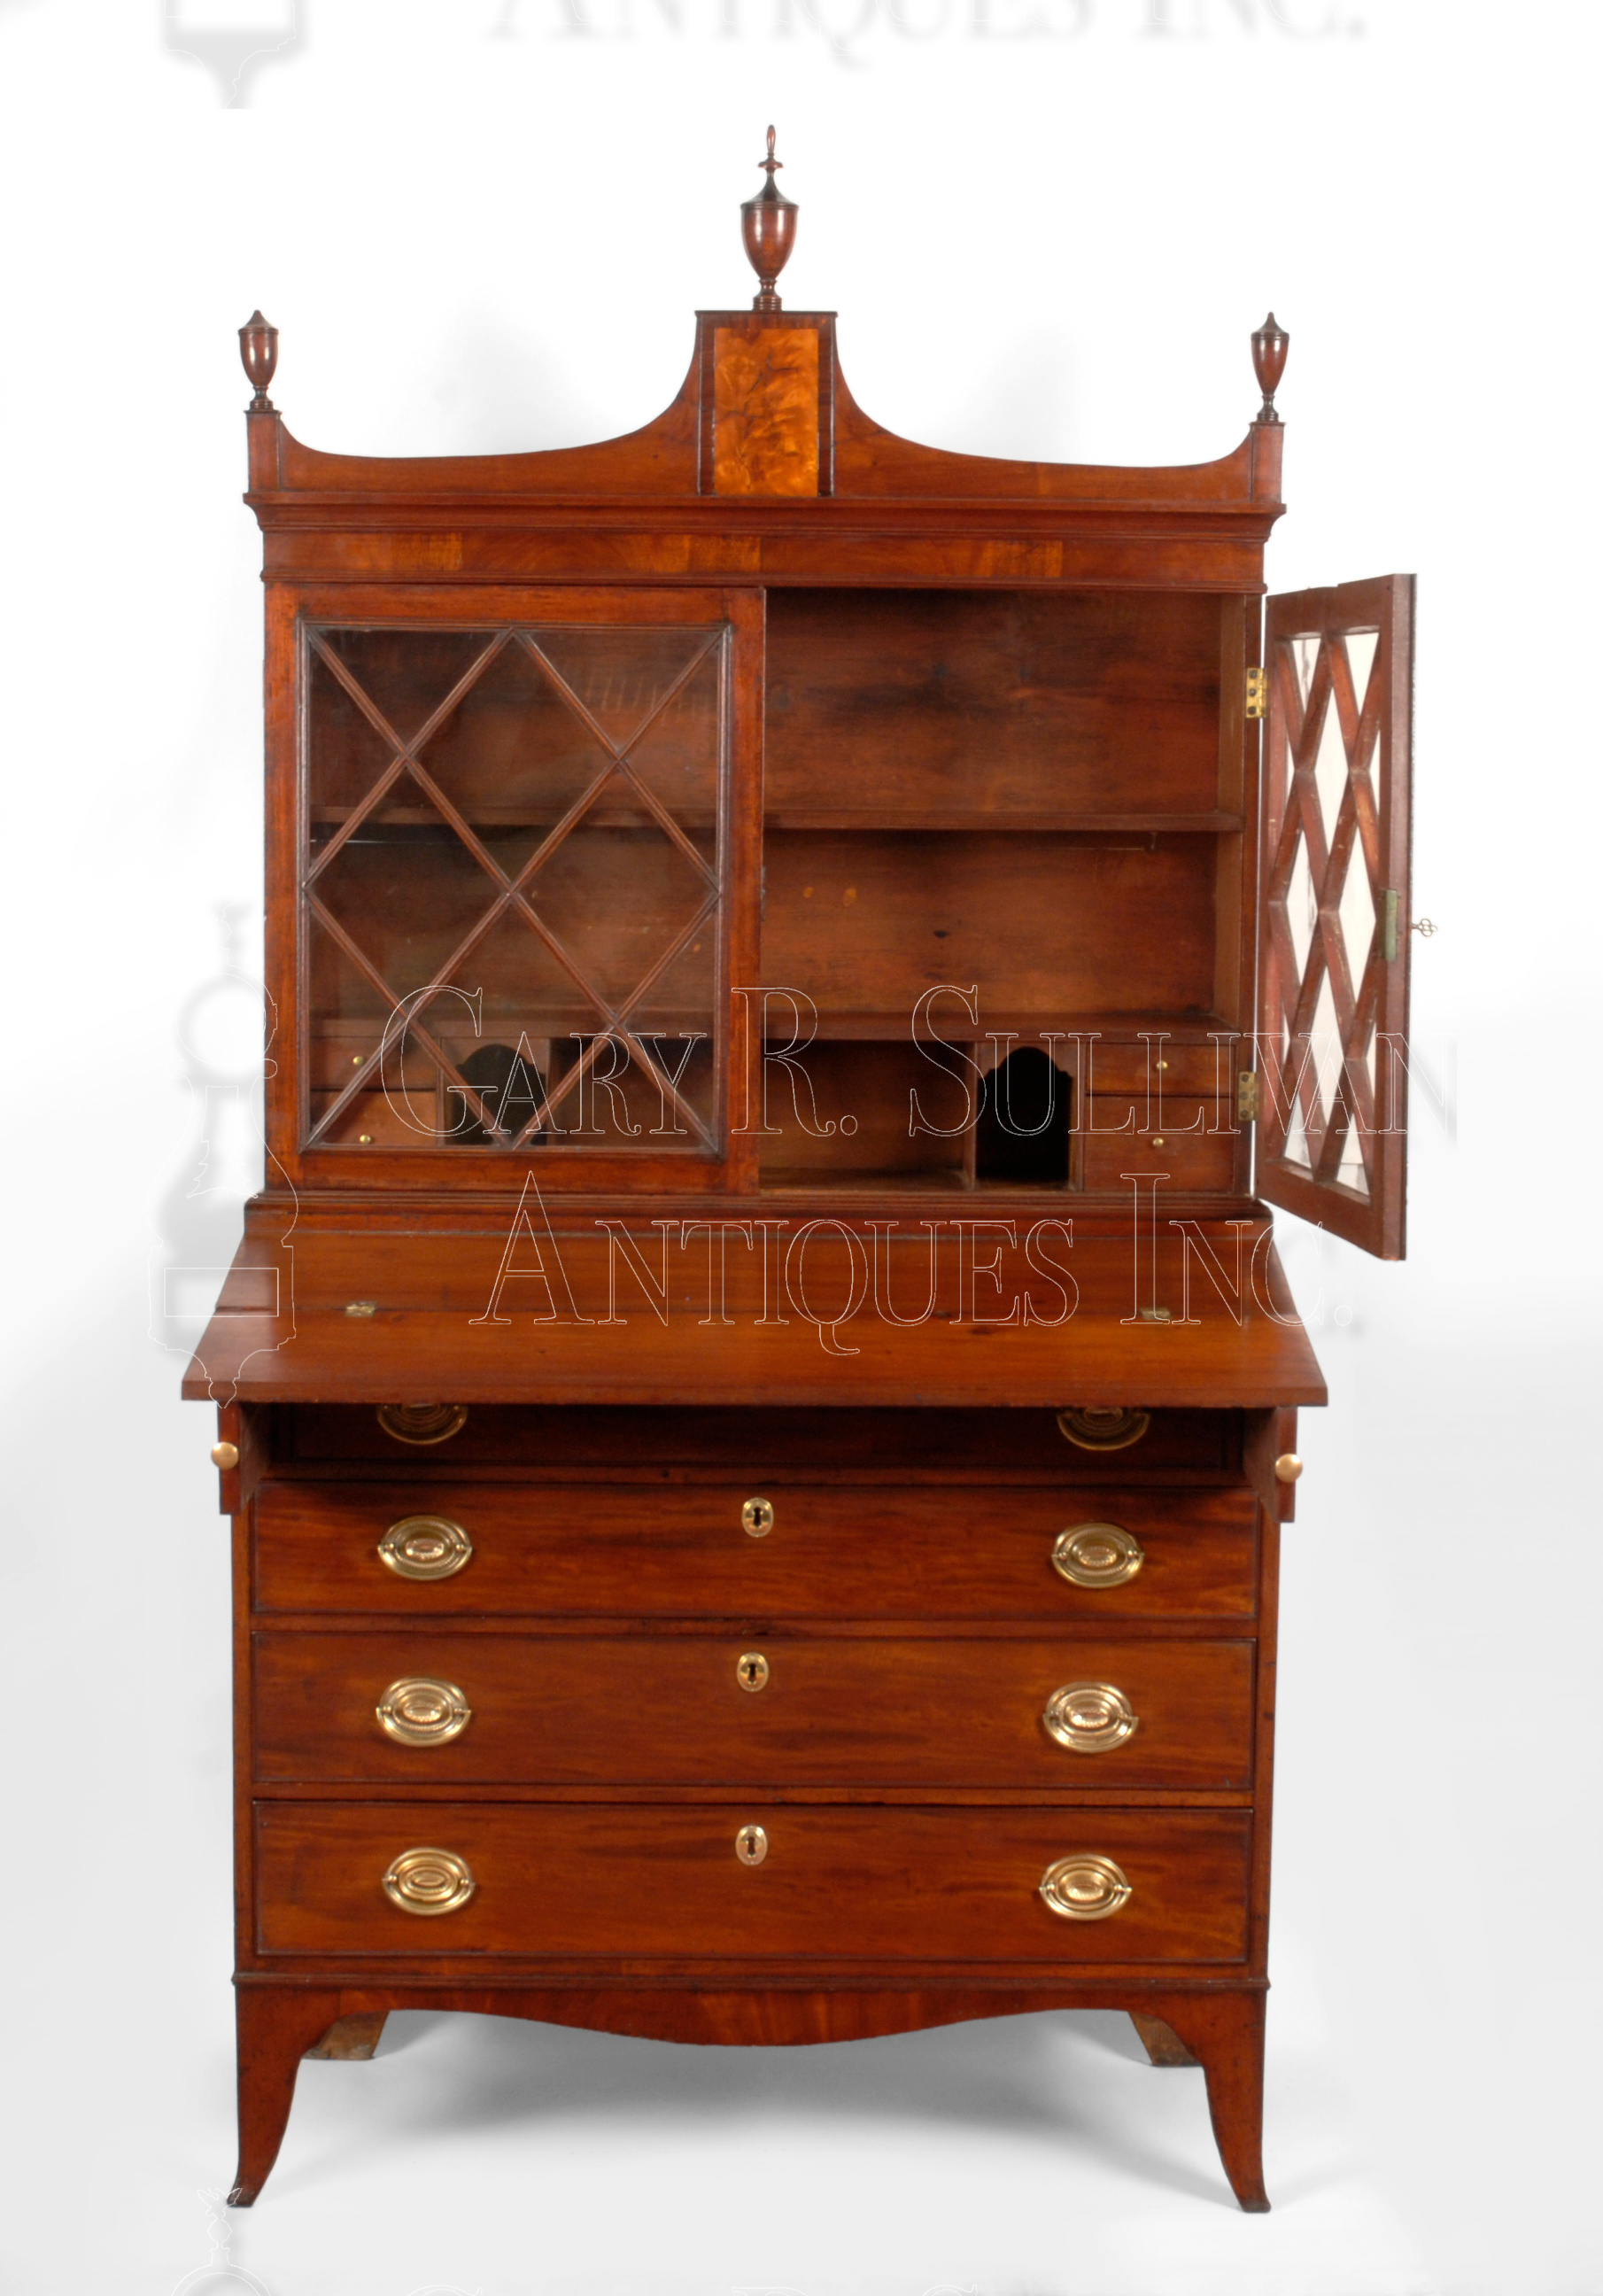 View in Browser. Federal Desk   Bookcase  Salem  Mass   Furniture 009027   Gary